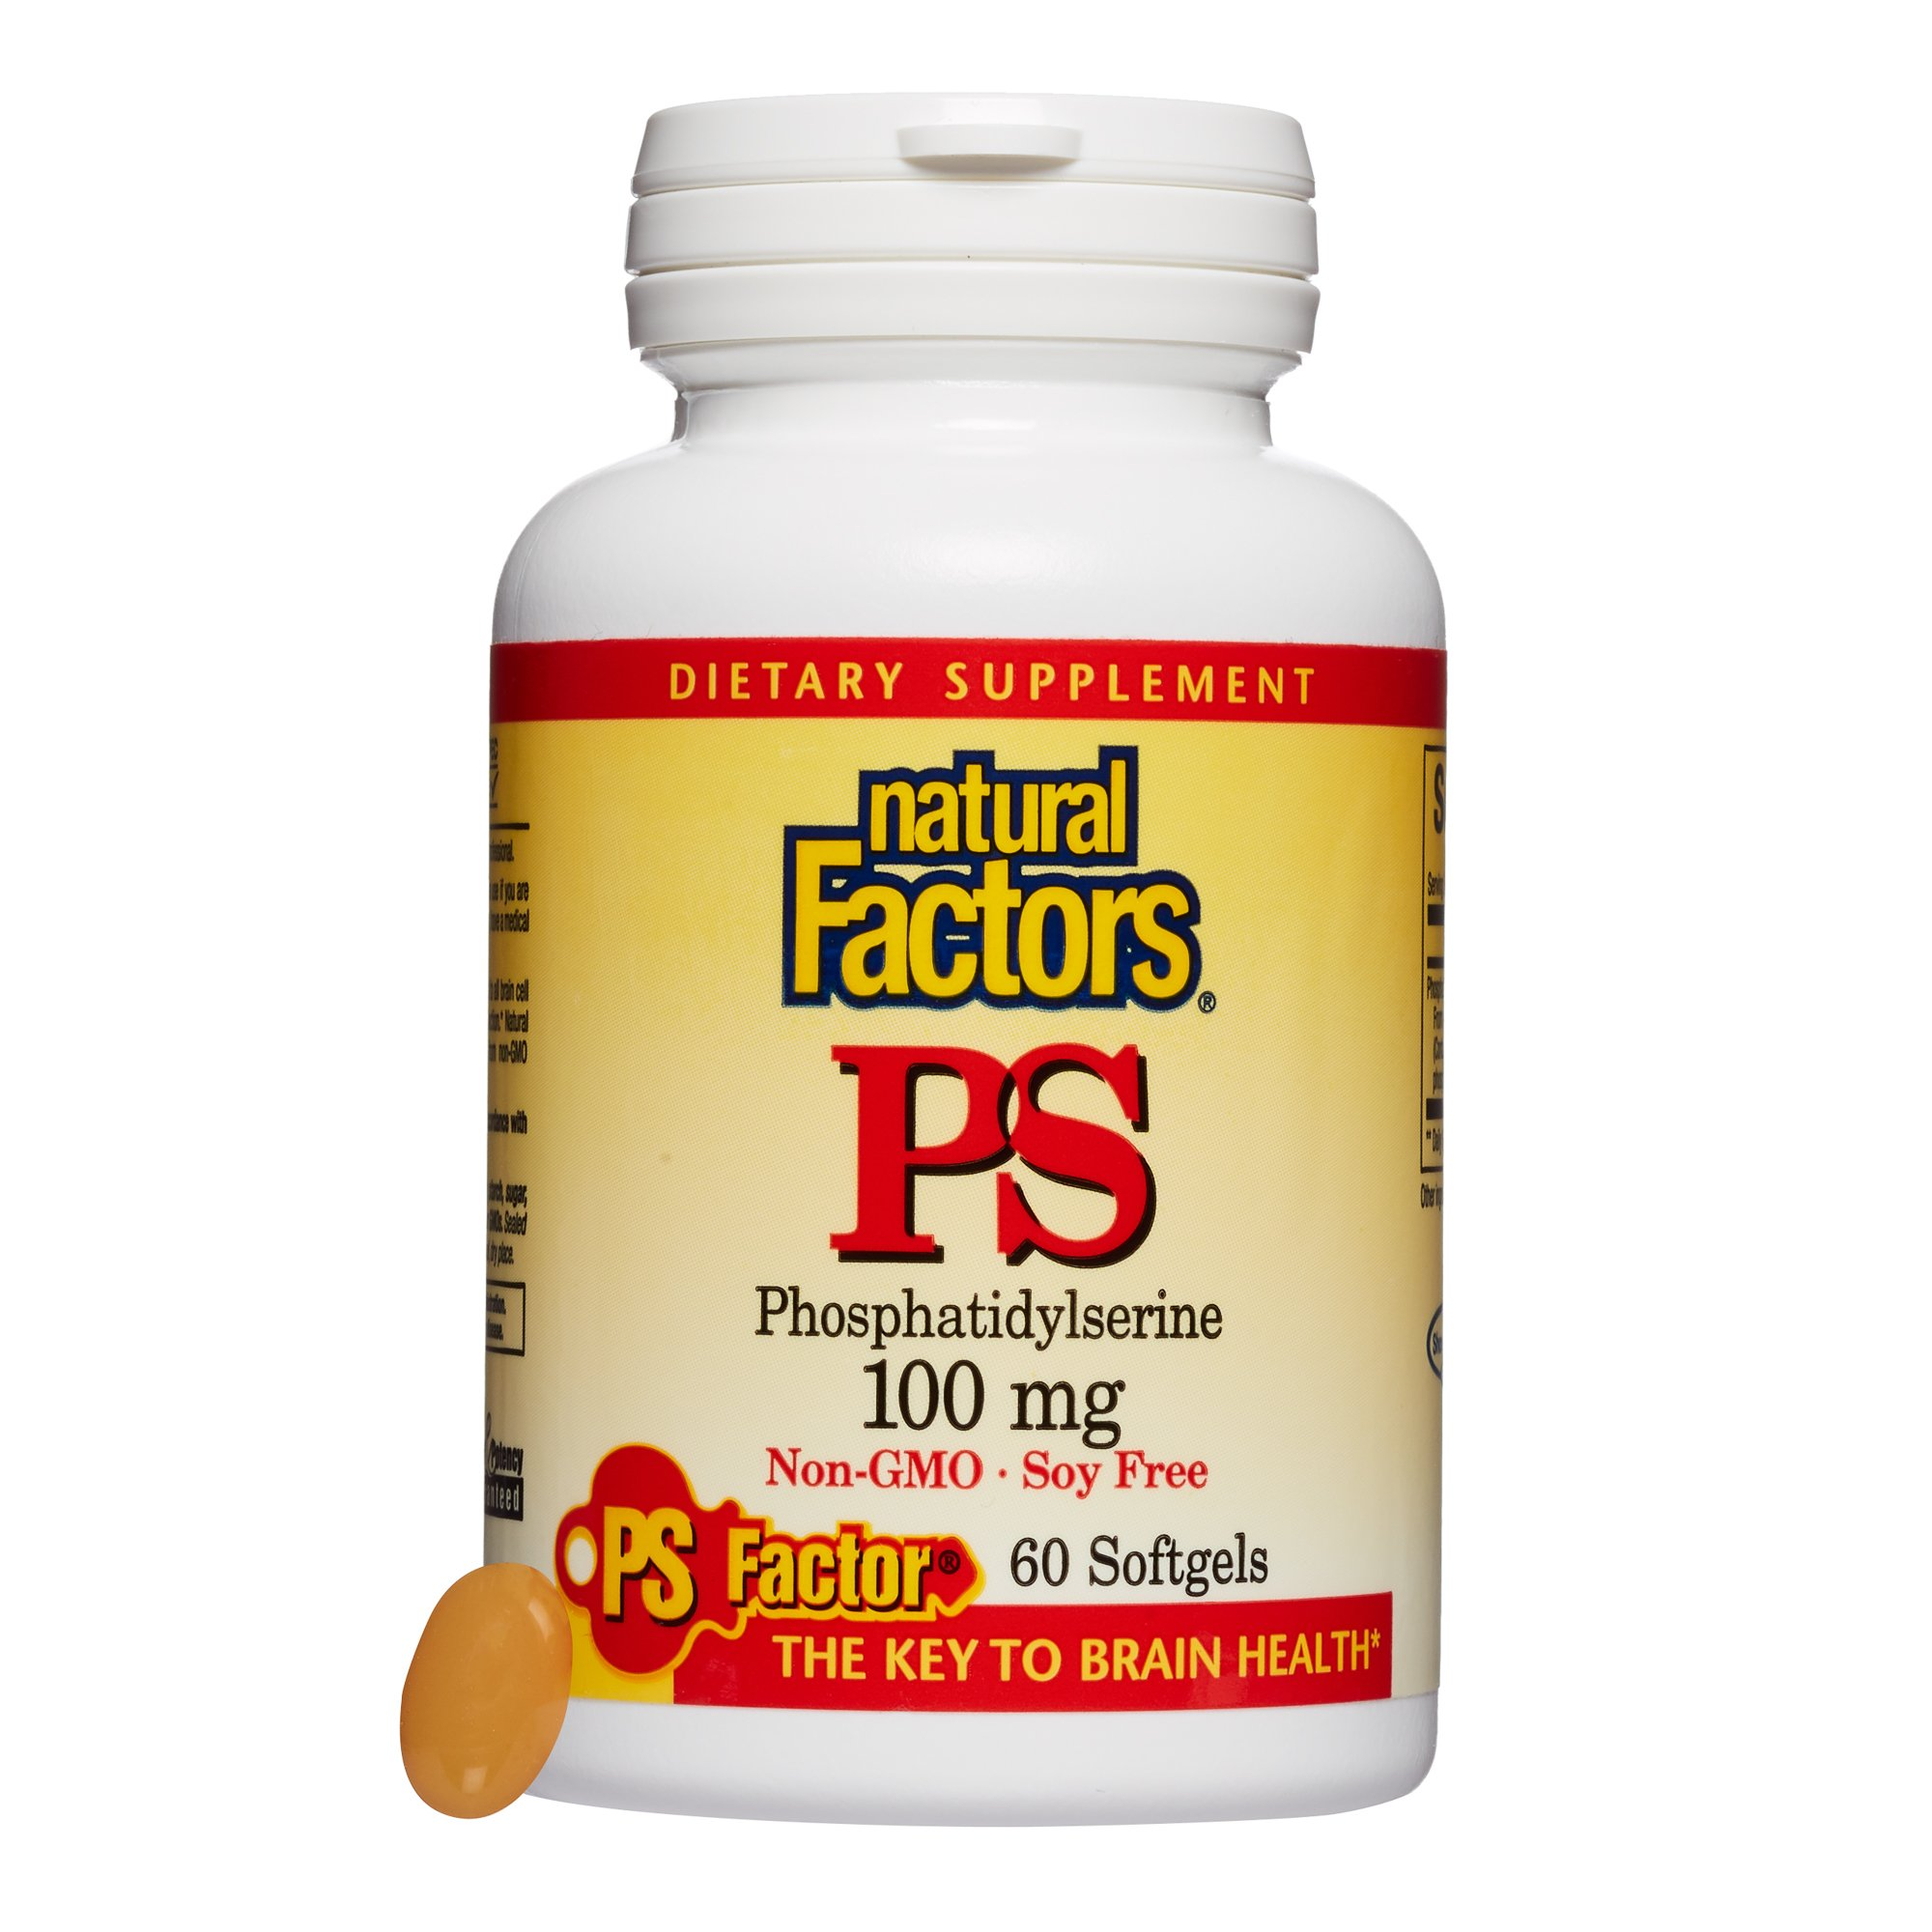 Natural Factors - PhosphatidylSerine (PS) 100mg, Supports Healthy Brain Cell Activity, 60 Soft Gels